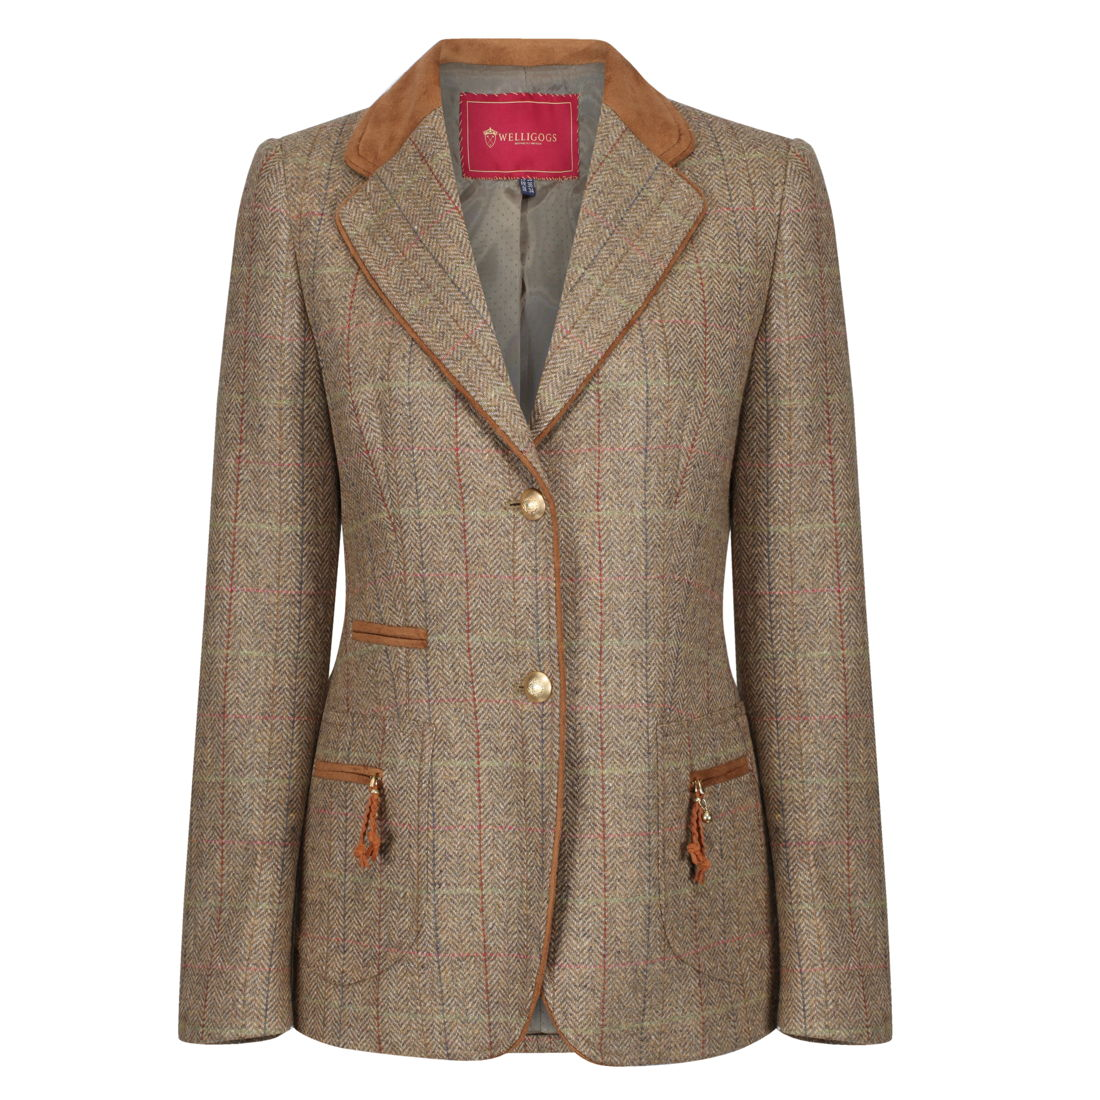 Welligogs Westminster womens tweed jacket